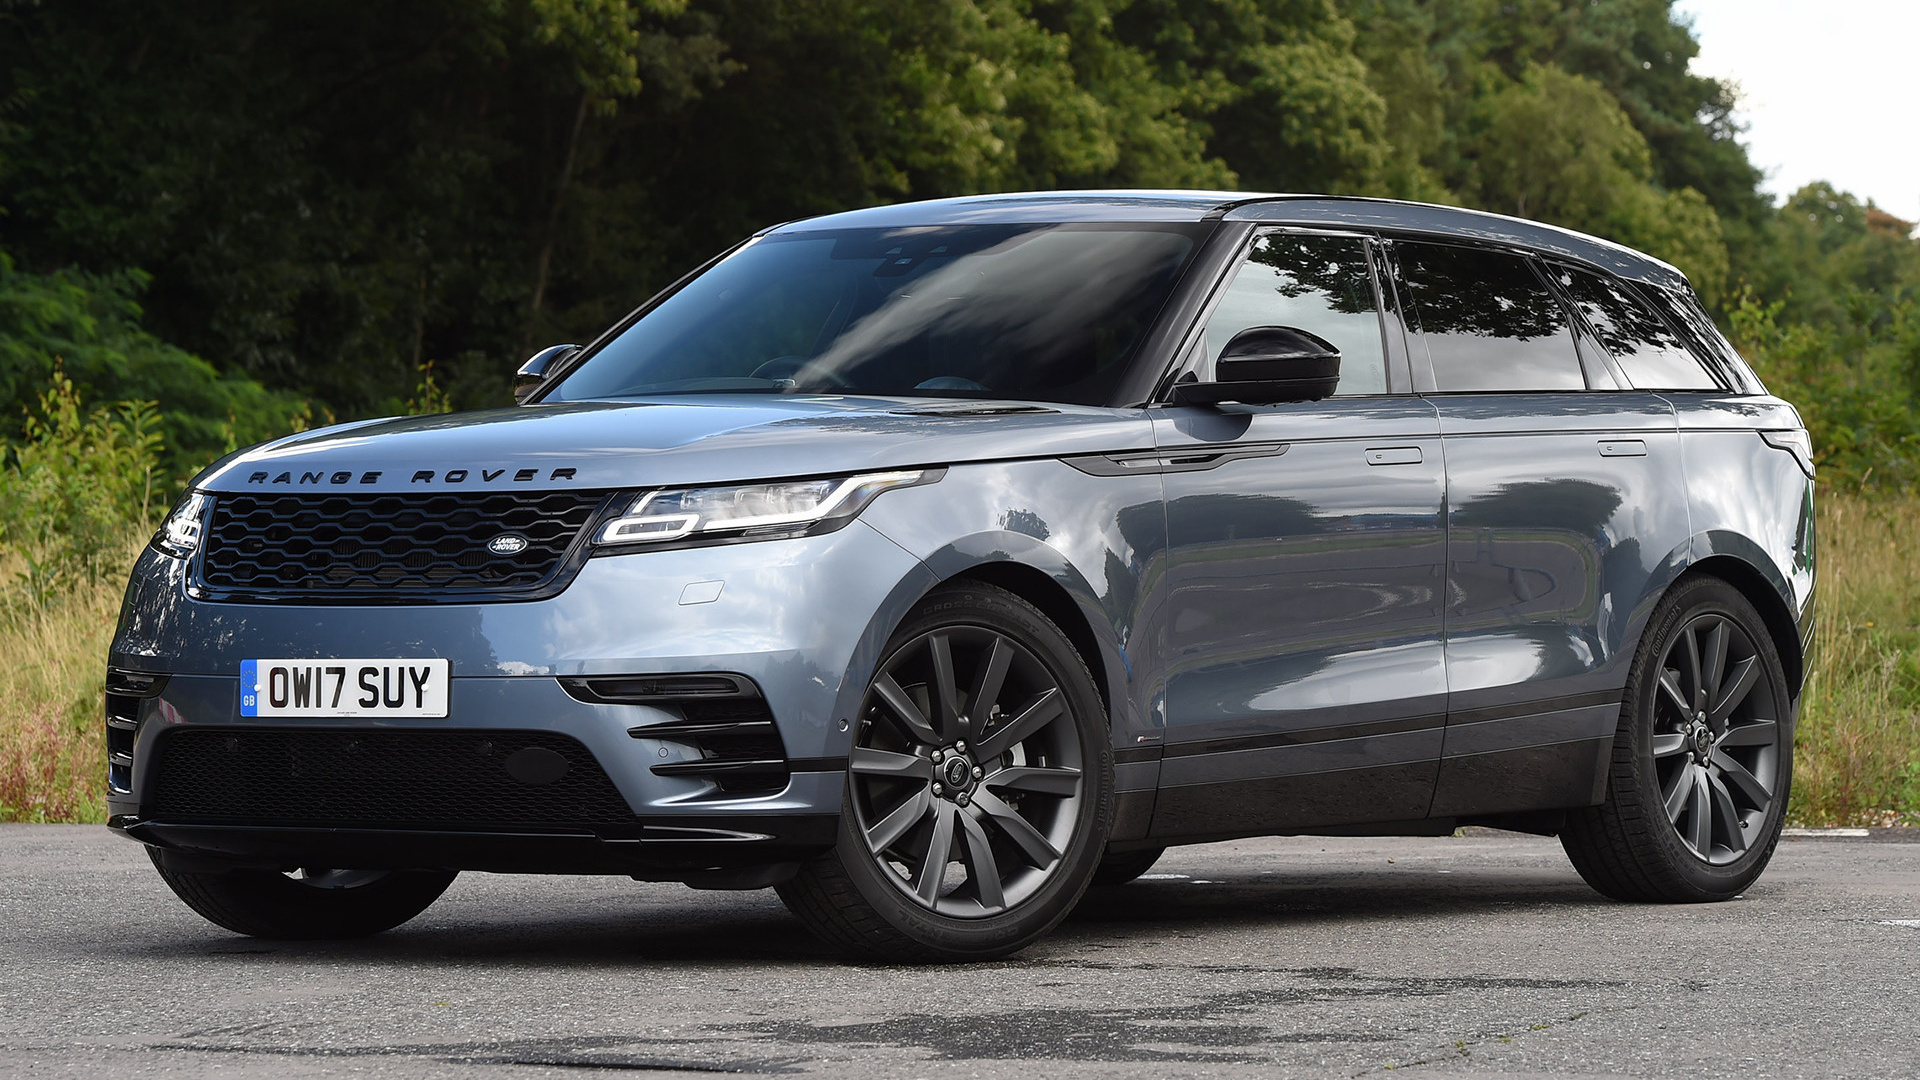 range rover velar r dynamic black pack 2017 uk wallpapers and hd images car pixel. Black Bedroom Furniture Sets. Home Design Ideas